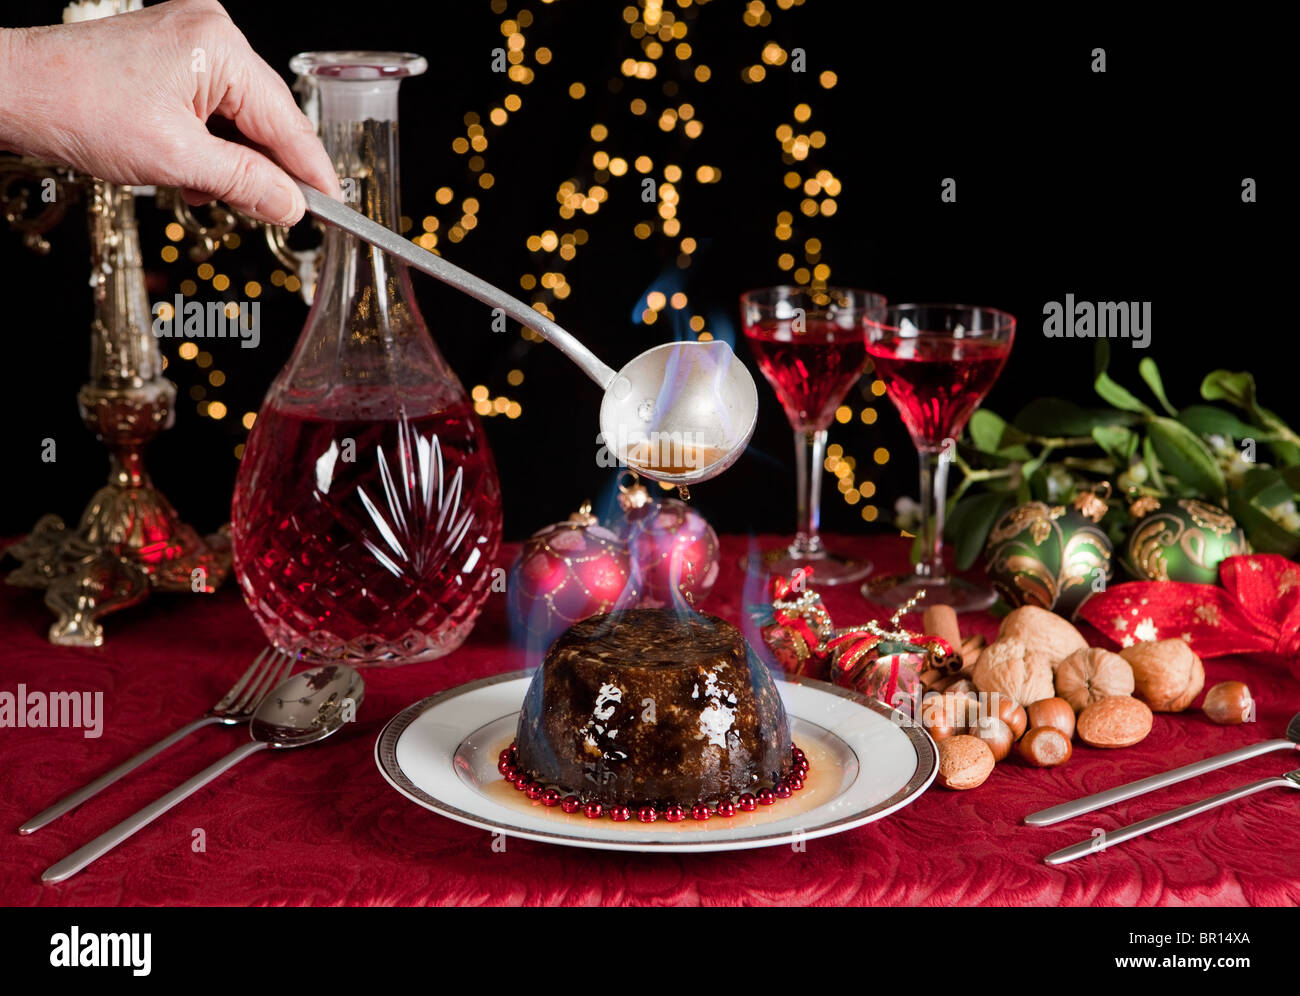 weihnachten tisch mit xmas pudding als nachtisch stockfoto bild 31373282 alamy. Black Bedroom Furniture Sets. Home Design Ideas